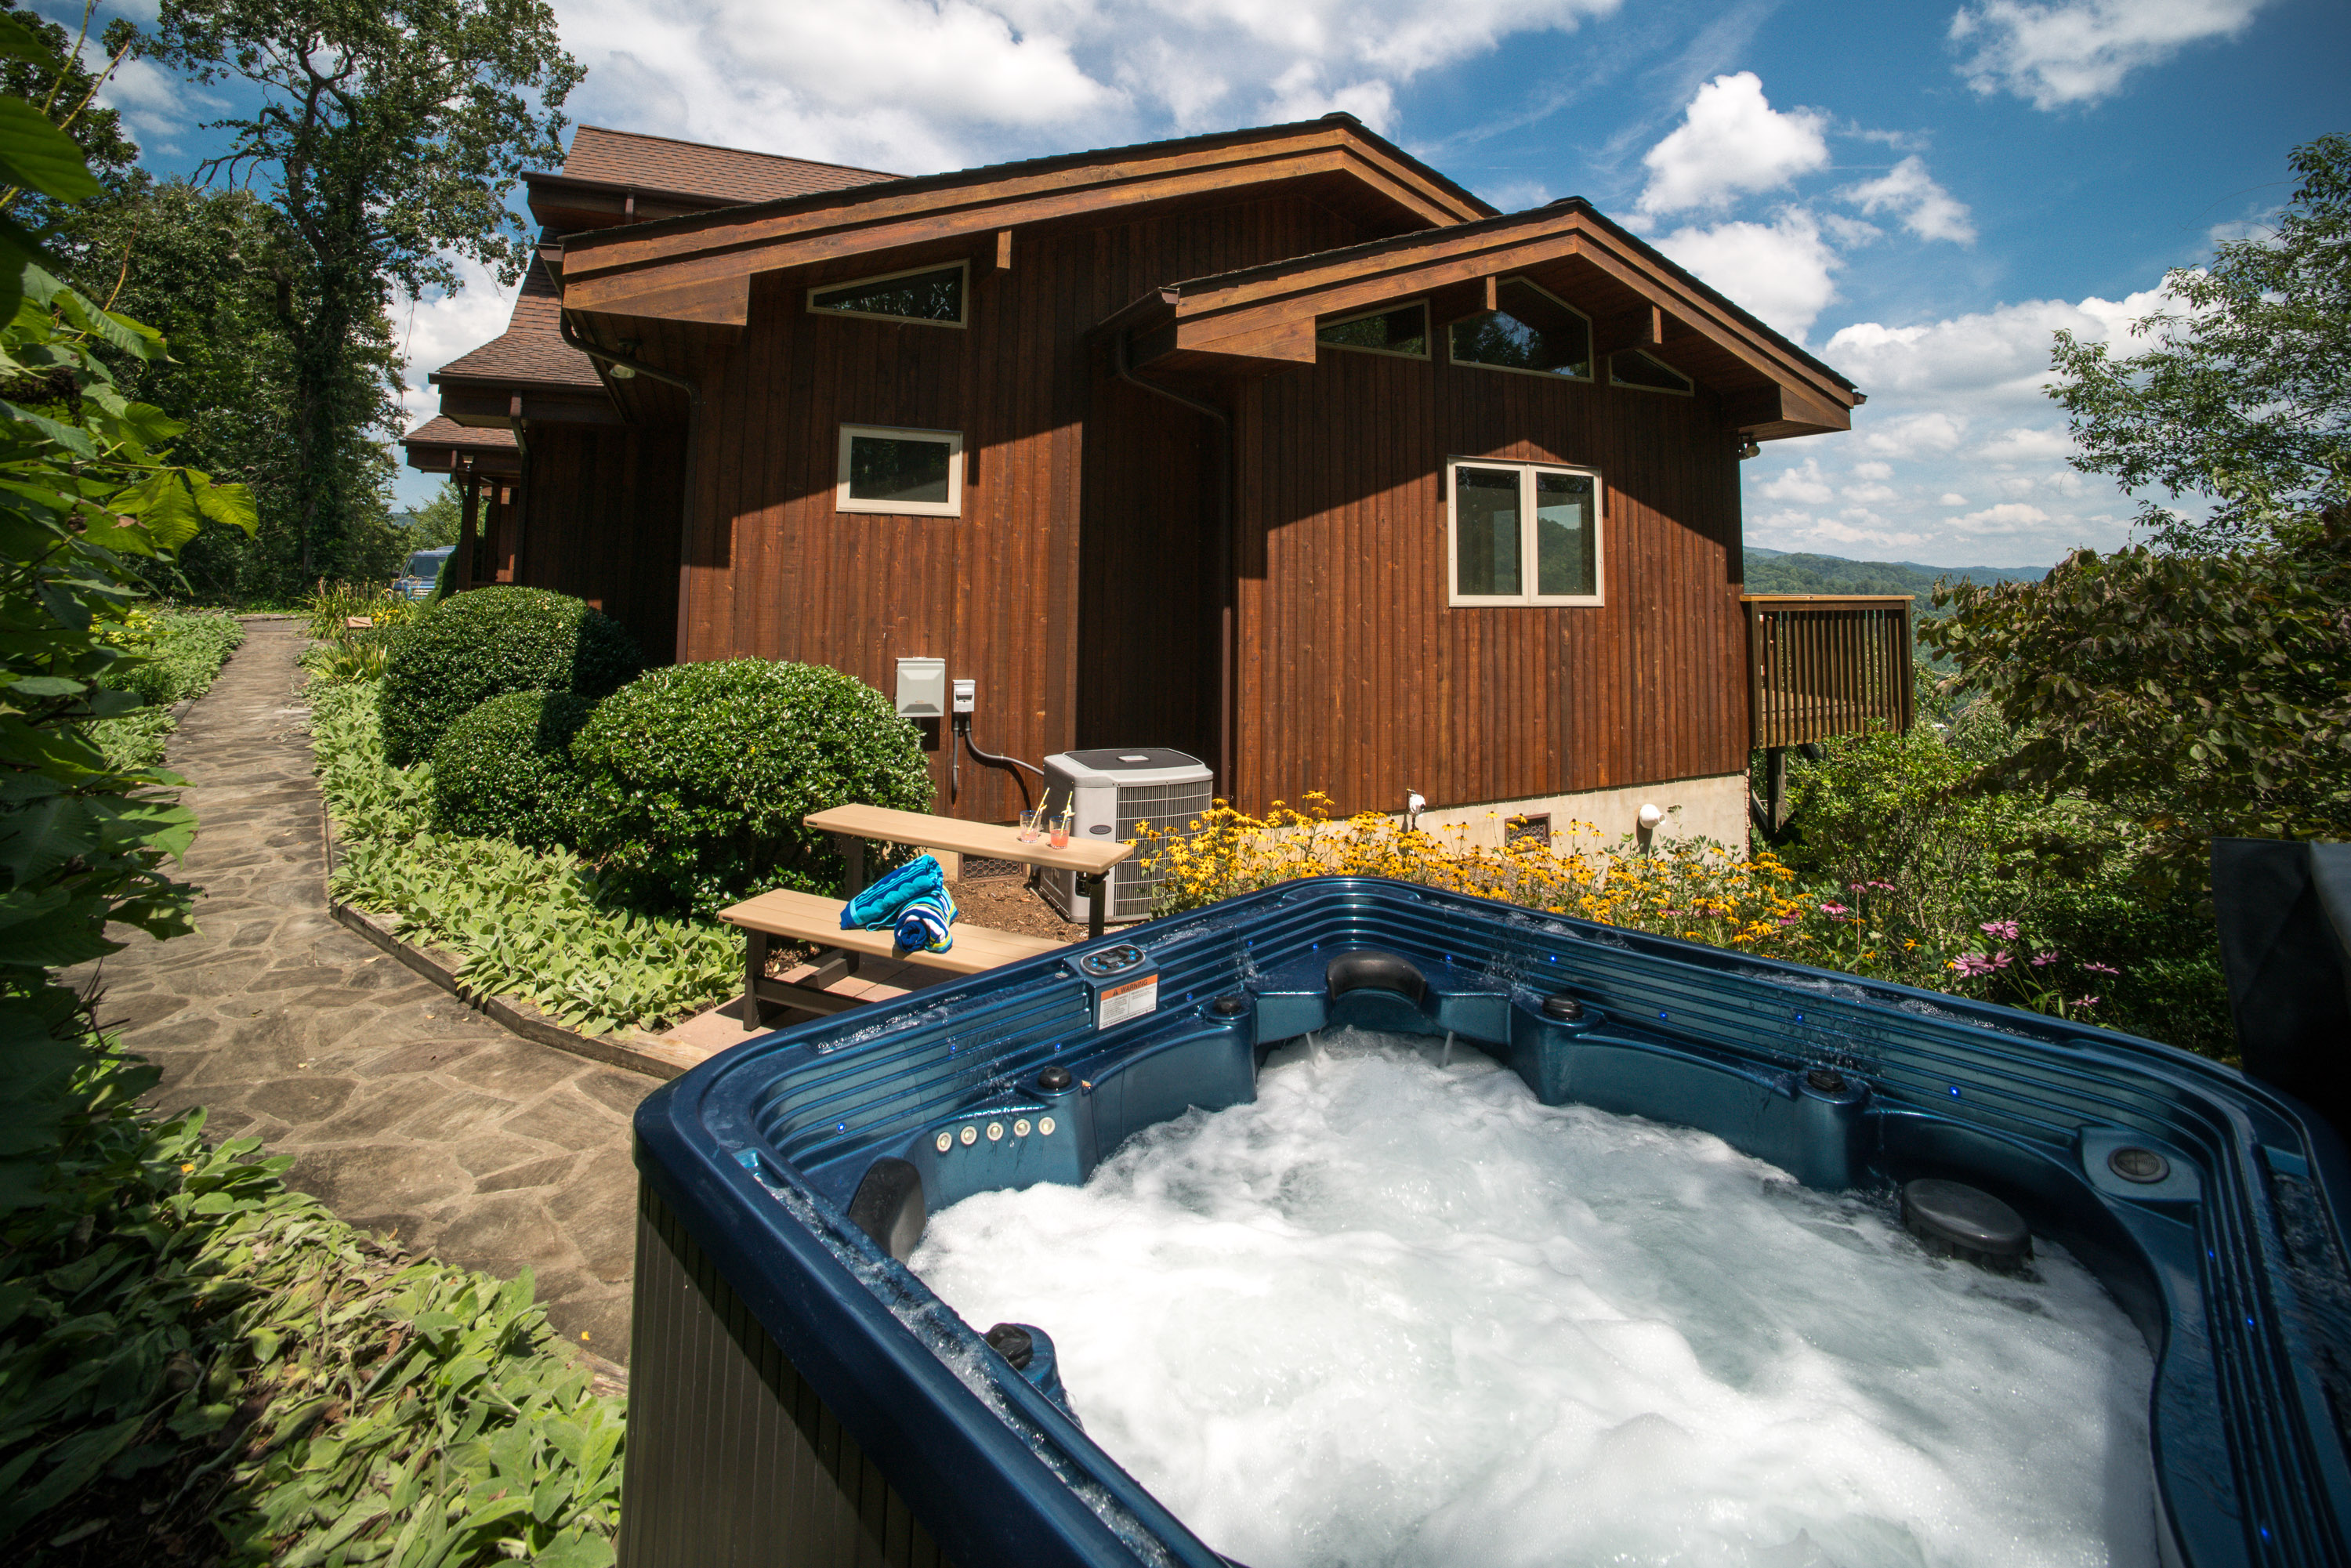 resort boone north birdsong high cabin cabins rental carolina country vacation rentals image